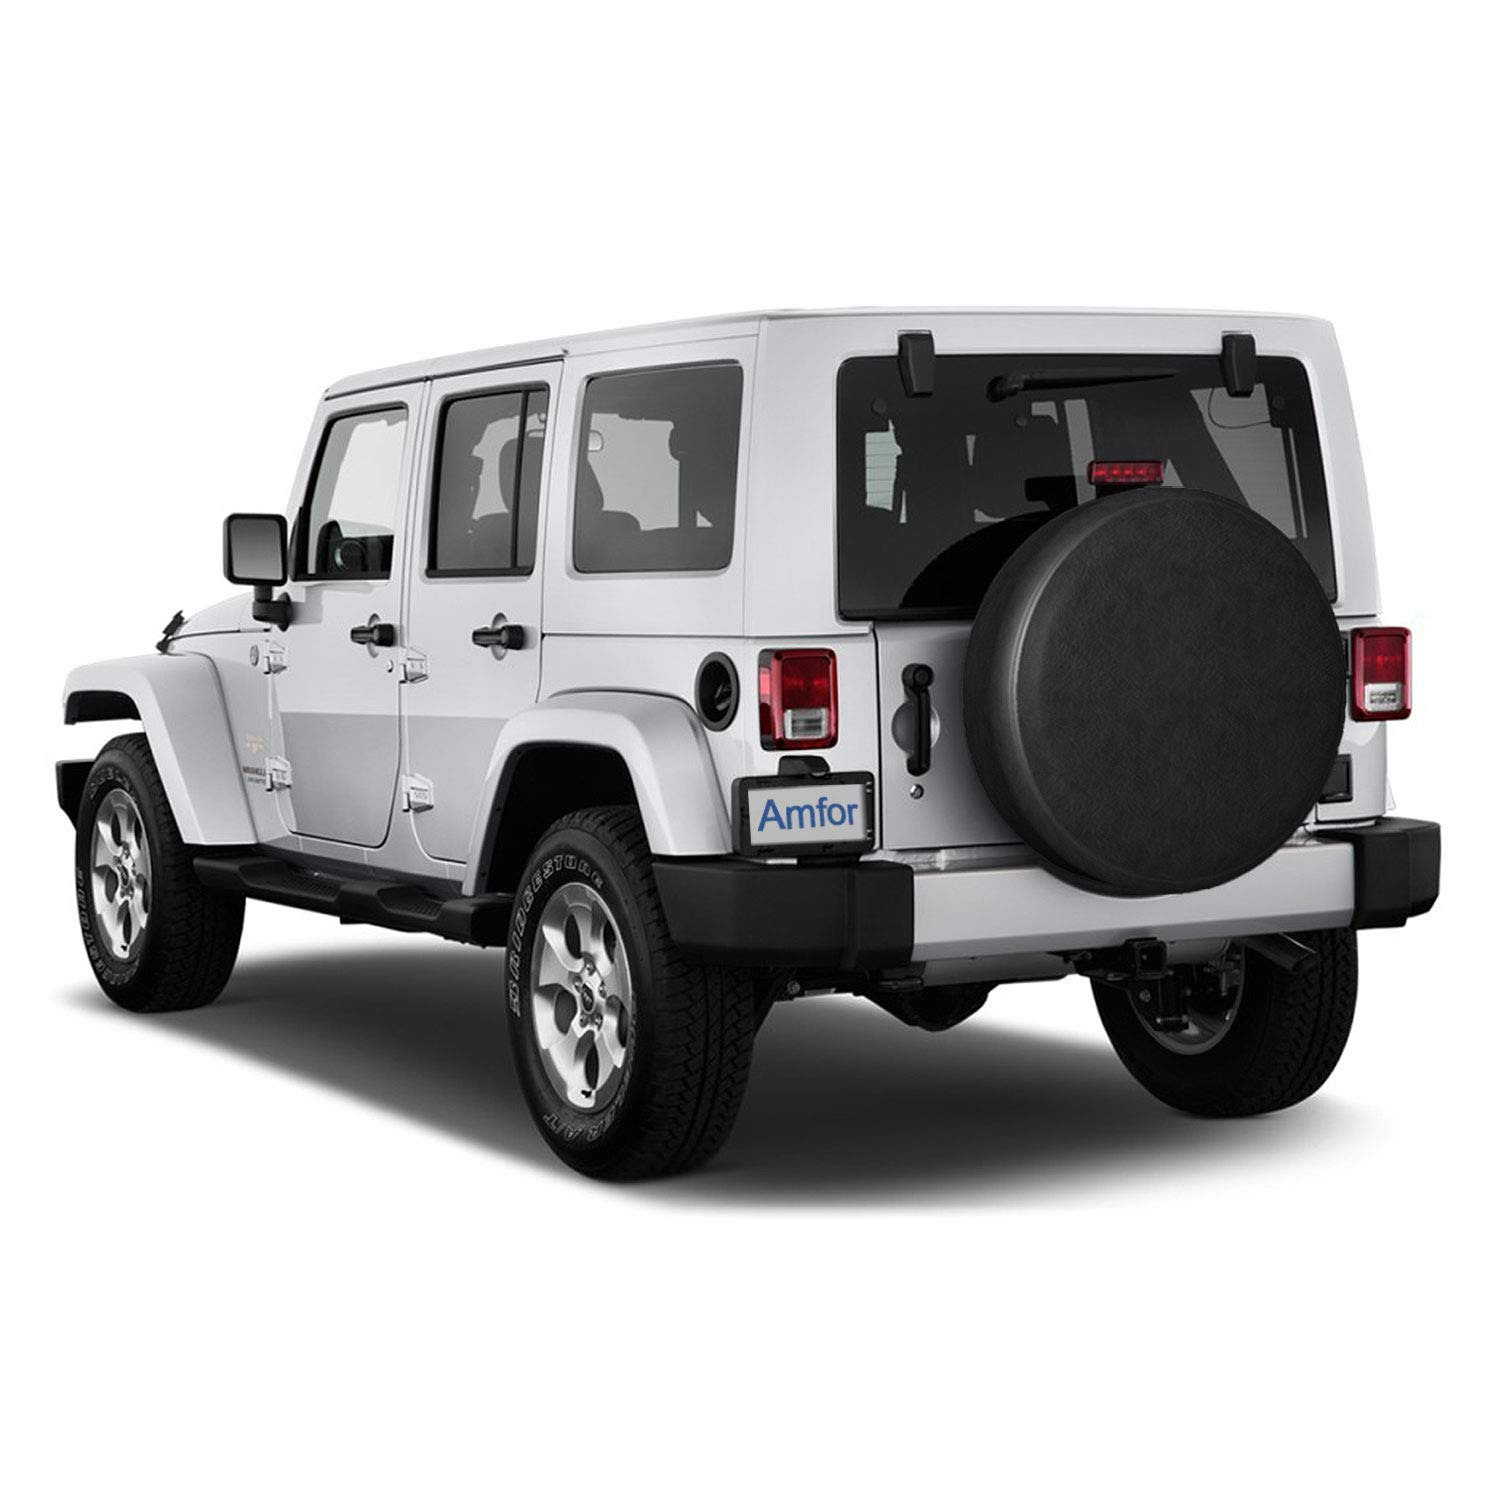 Universal Fit for Jeep Wheel Diameter 28-29 Trailer Truck and Many Vehicle RV SUV Spare Tire Cover Weatherproof Tire Protectors 15 inch for Tire /Φ 28-29, White Wheel Diameter 28-29 FDINF